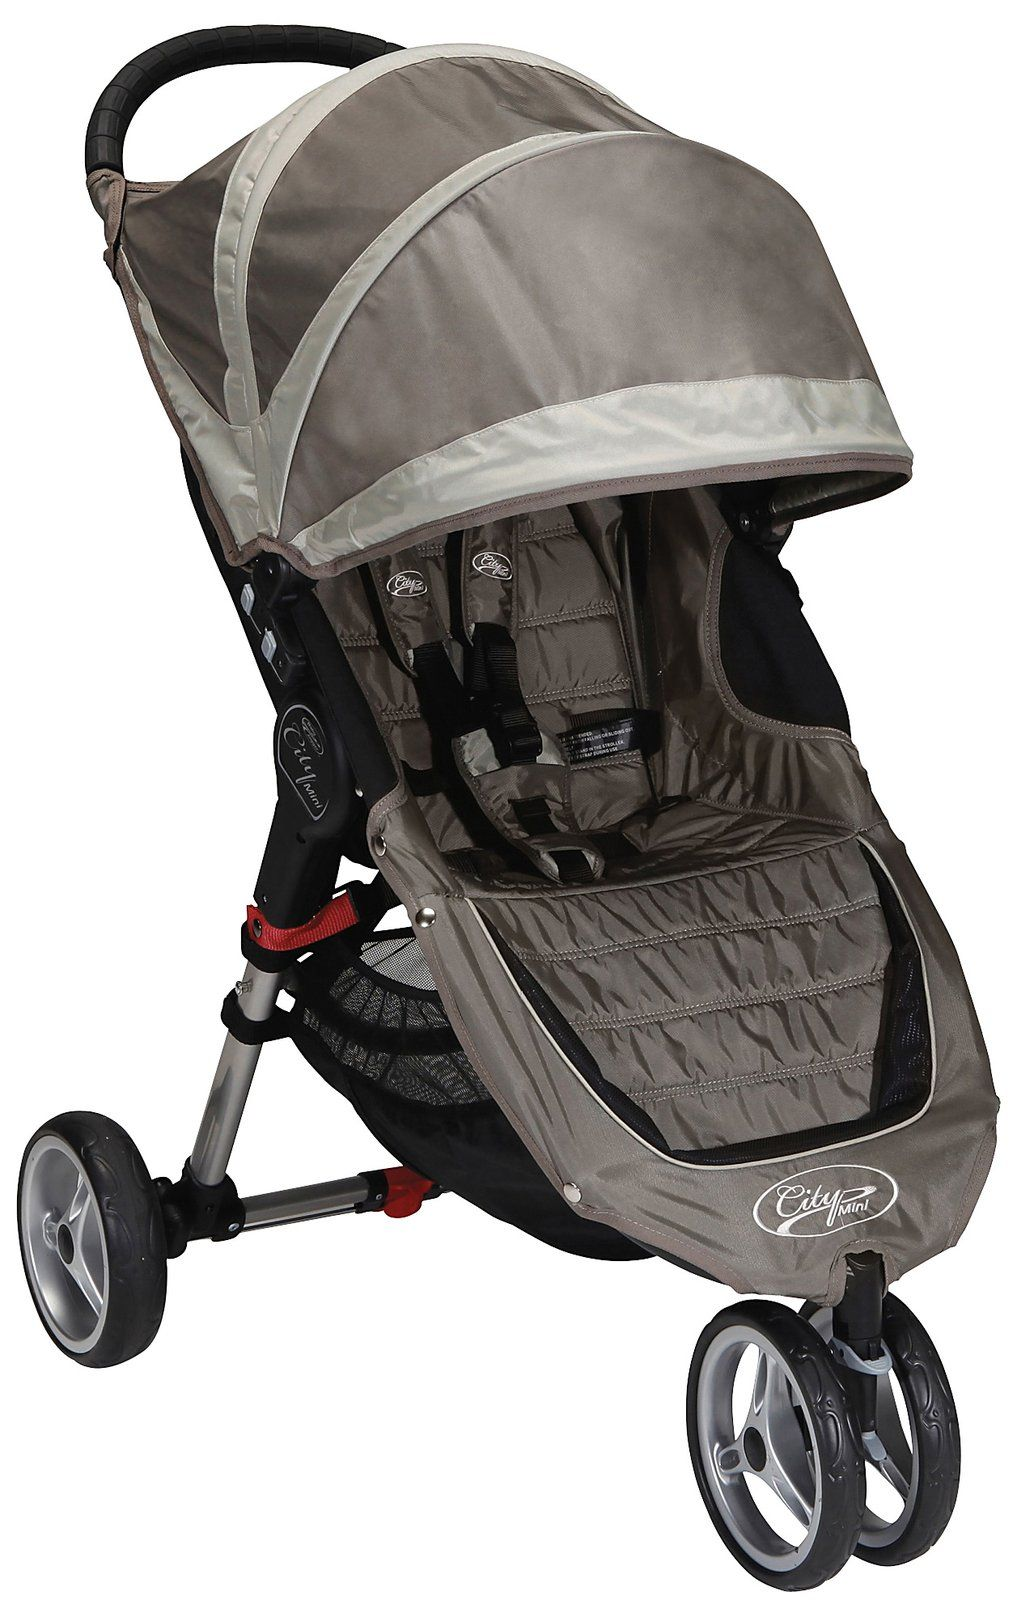 Baby Jogger City Mini Single Stroller Black/Gray Free